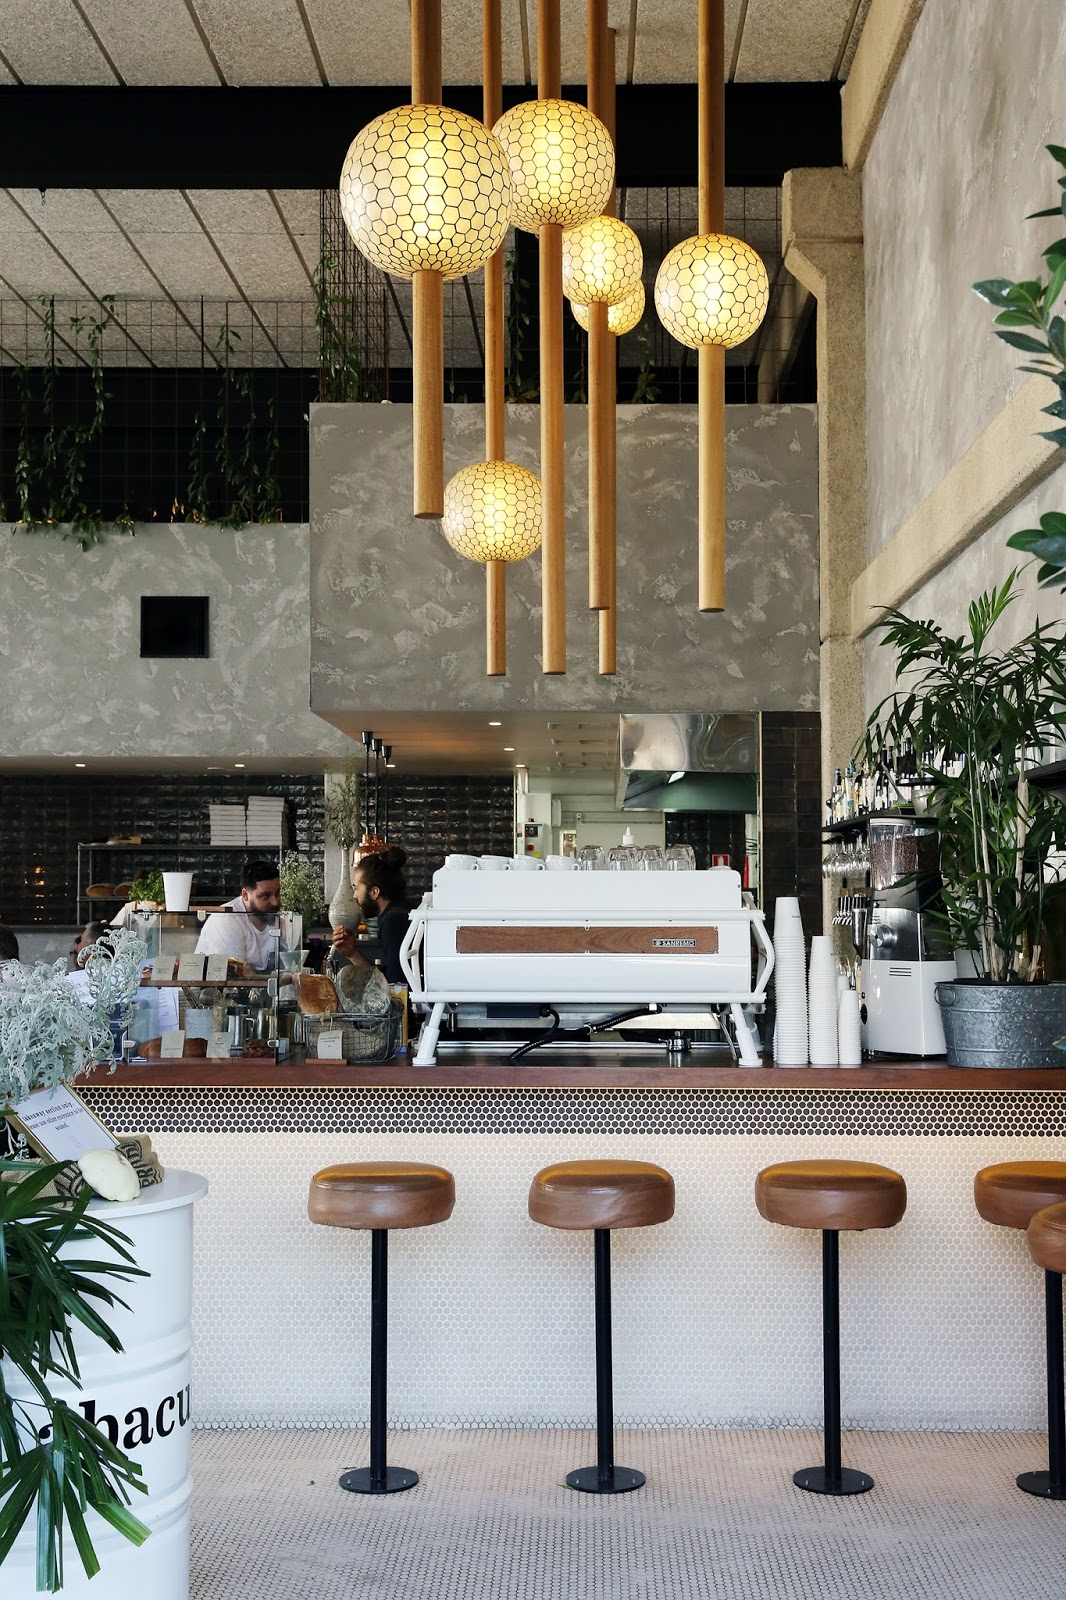 Melbourne, Australia: 8 of my Favourite Brunch Spots